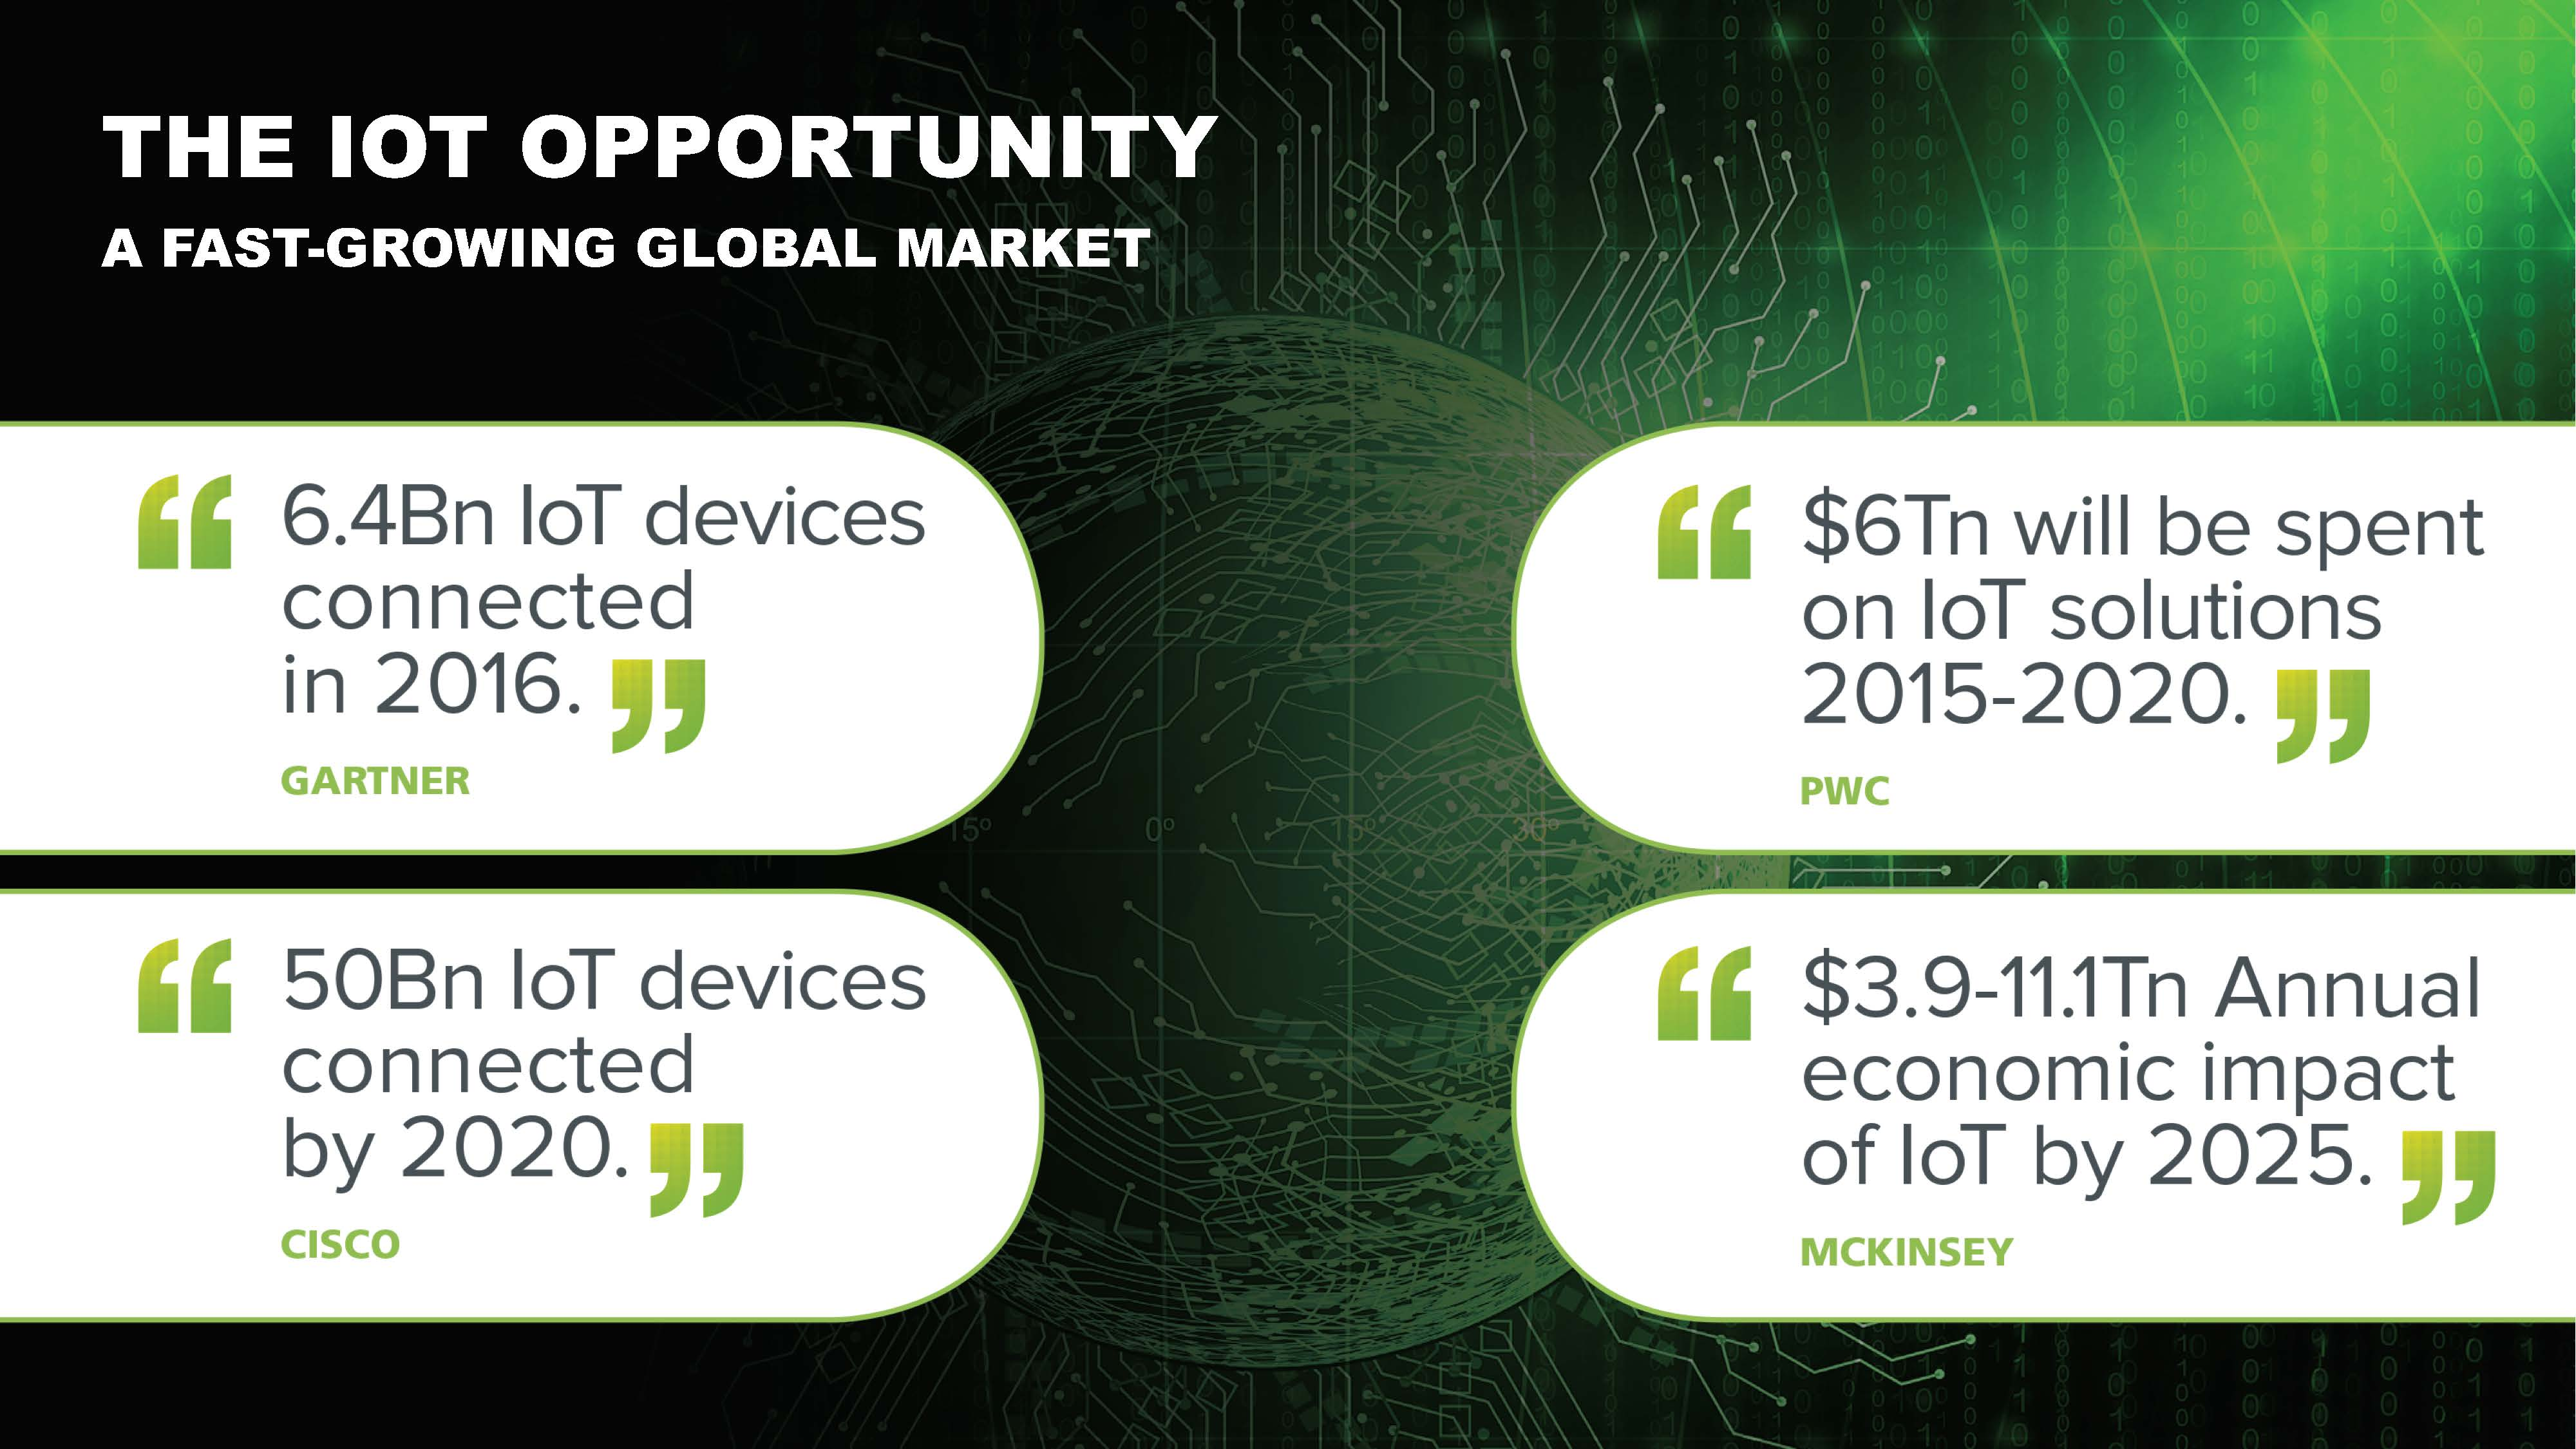 01the iot opportunity